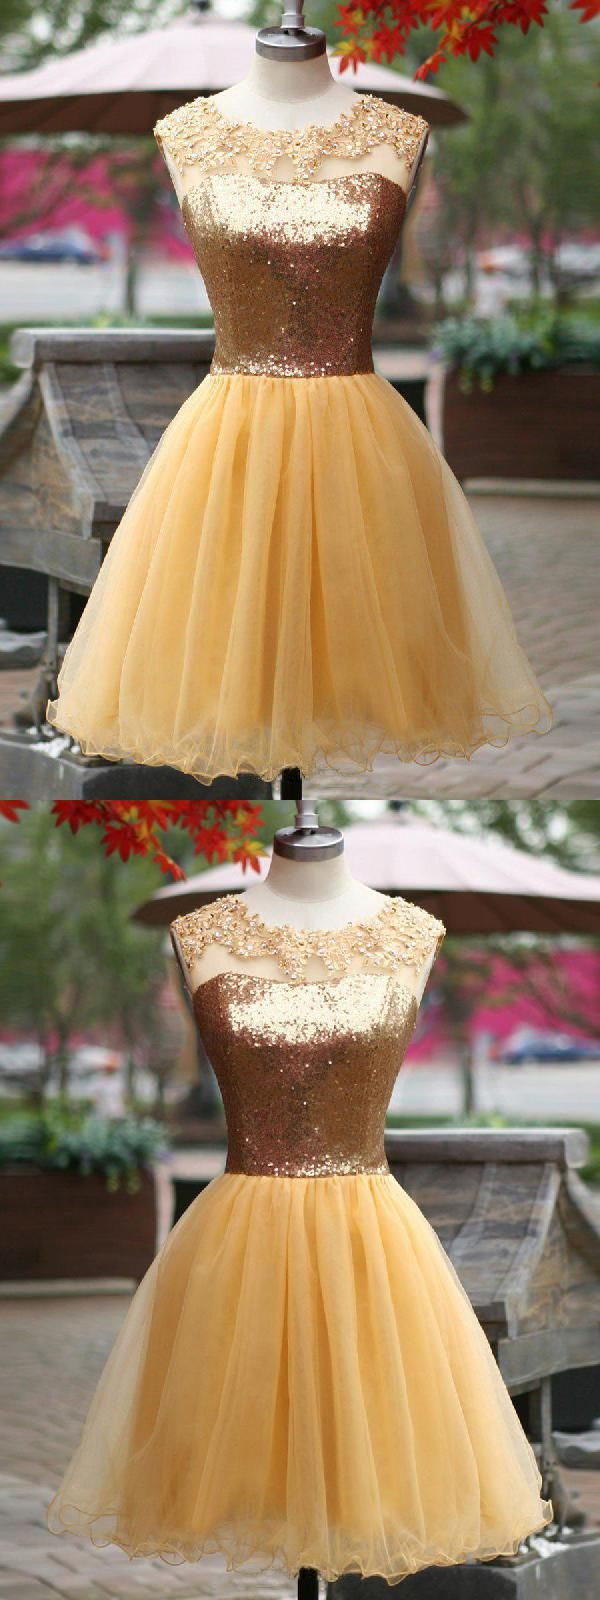 Sleeveless yellow party homecoming dresses absorbing short aline